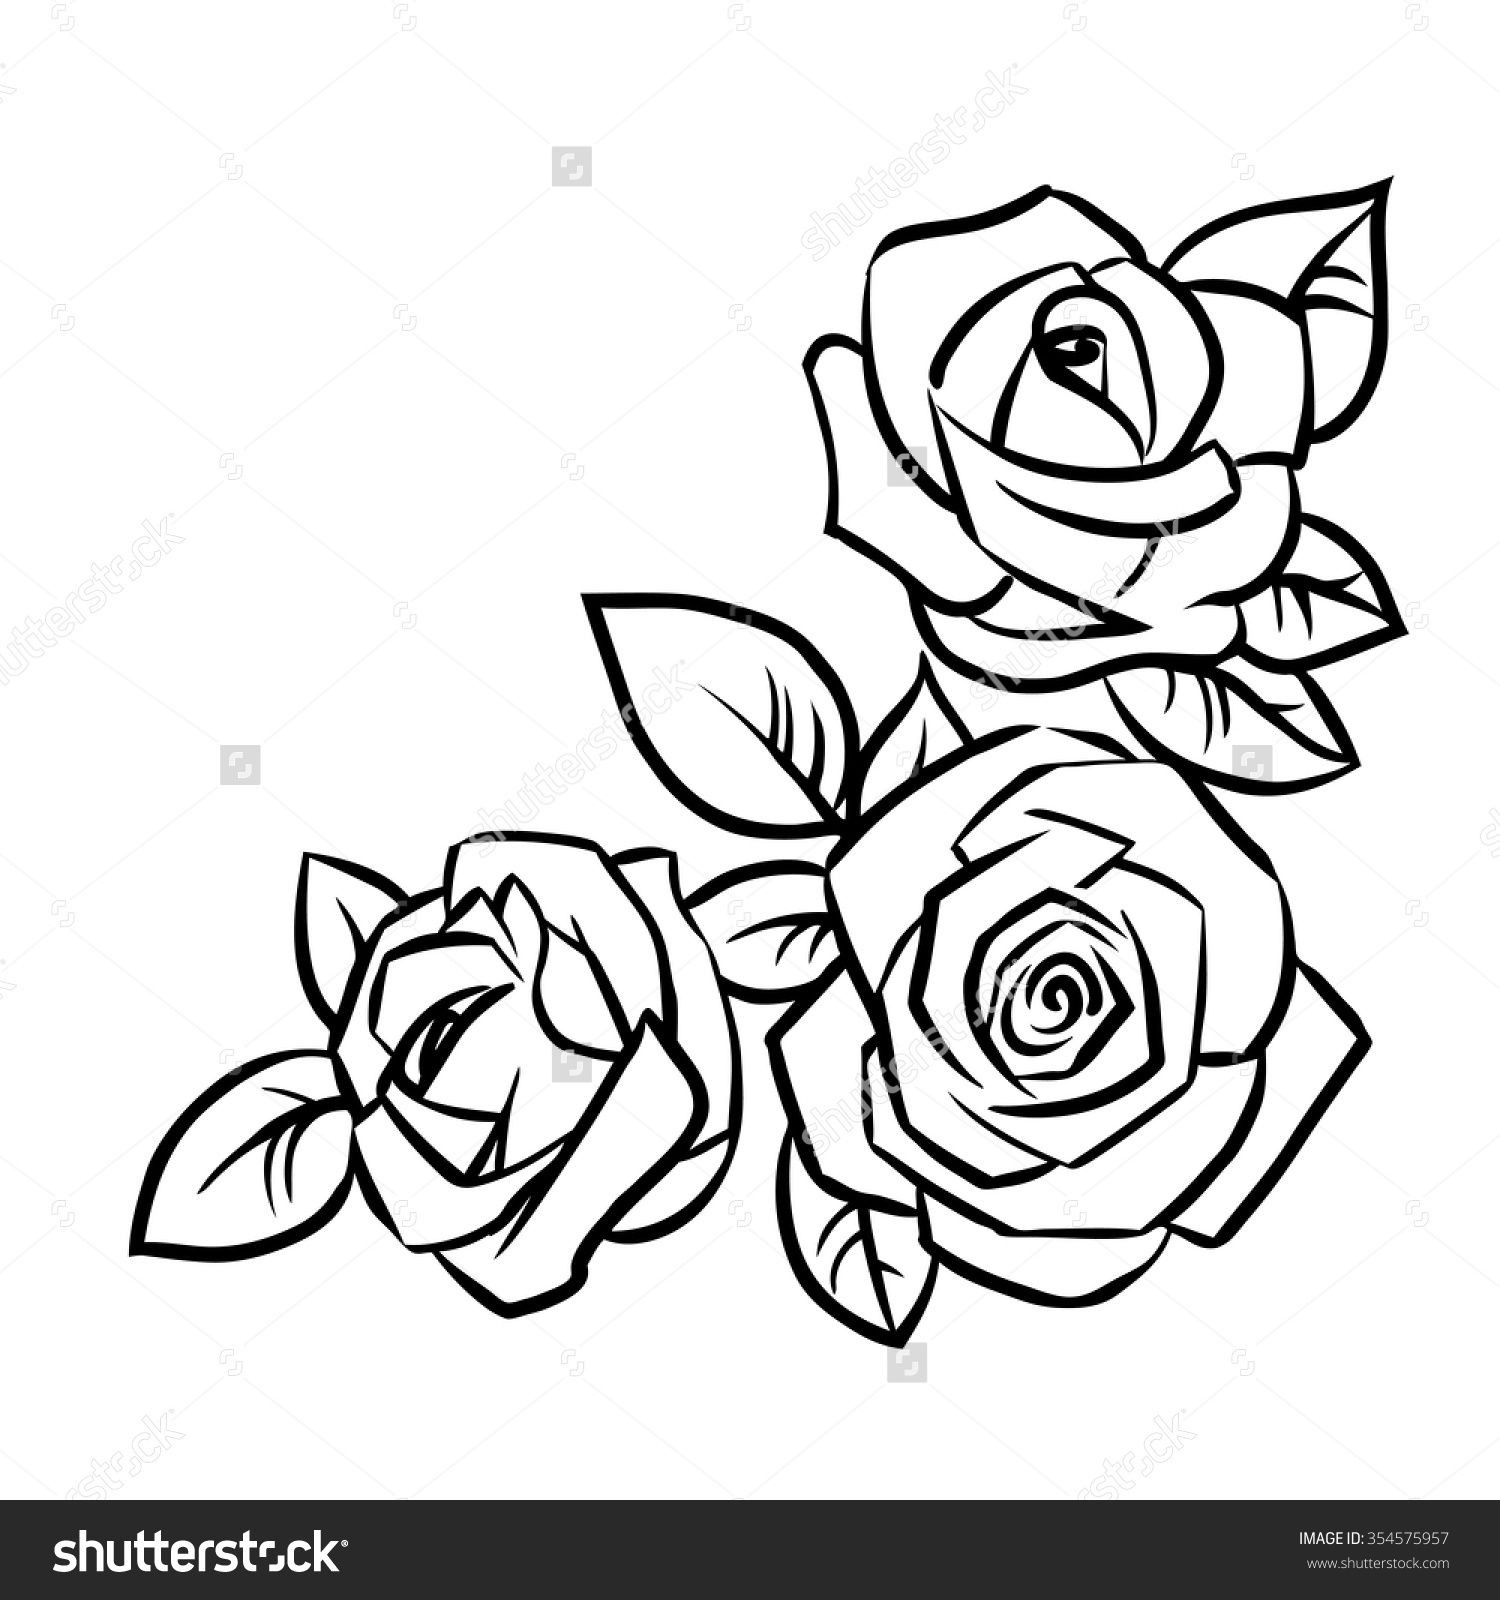 1500x1600 Simple Rose Drawing